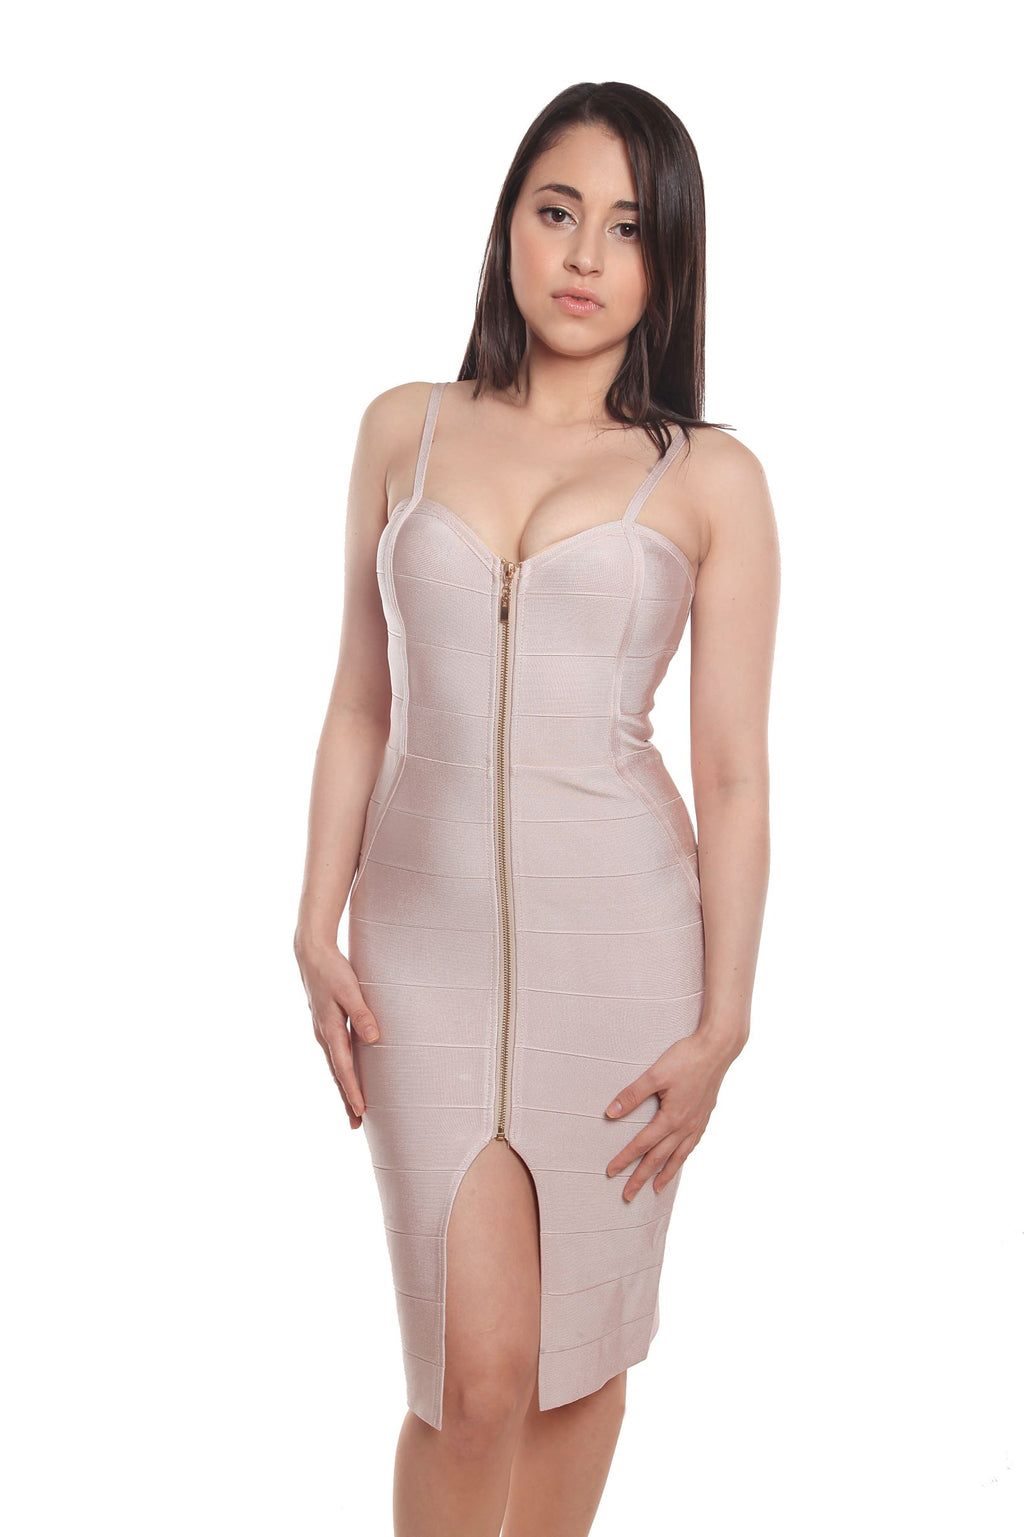 Nolvia Nude Front Zipper Bandage Dress